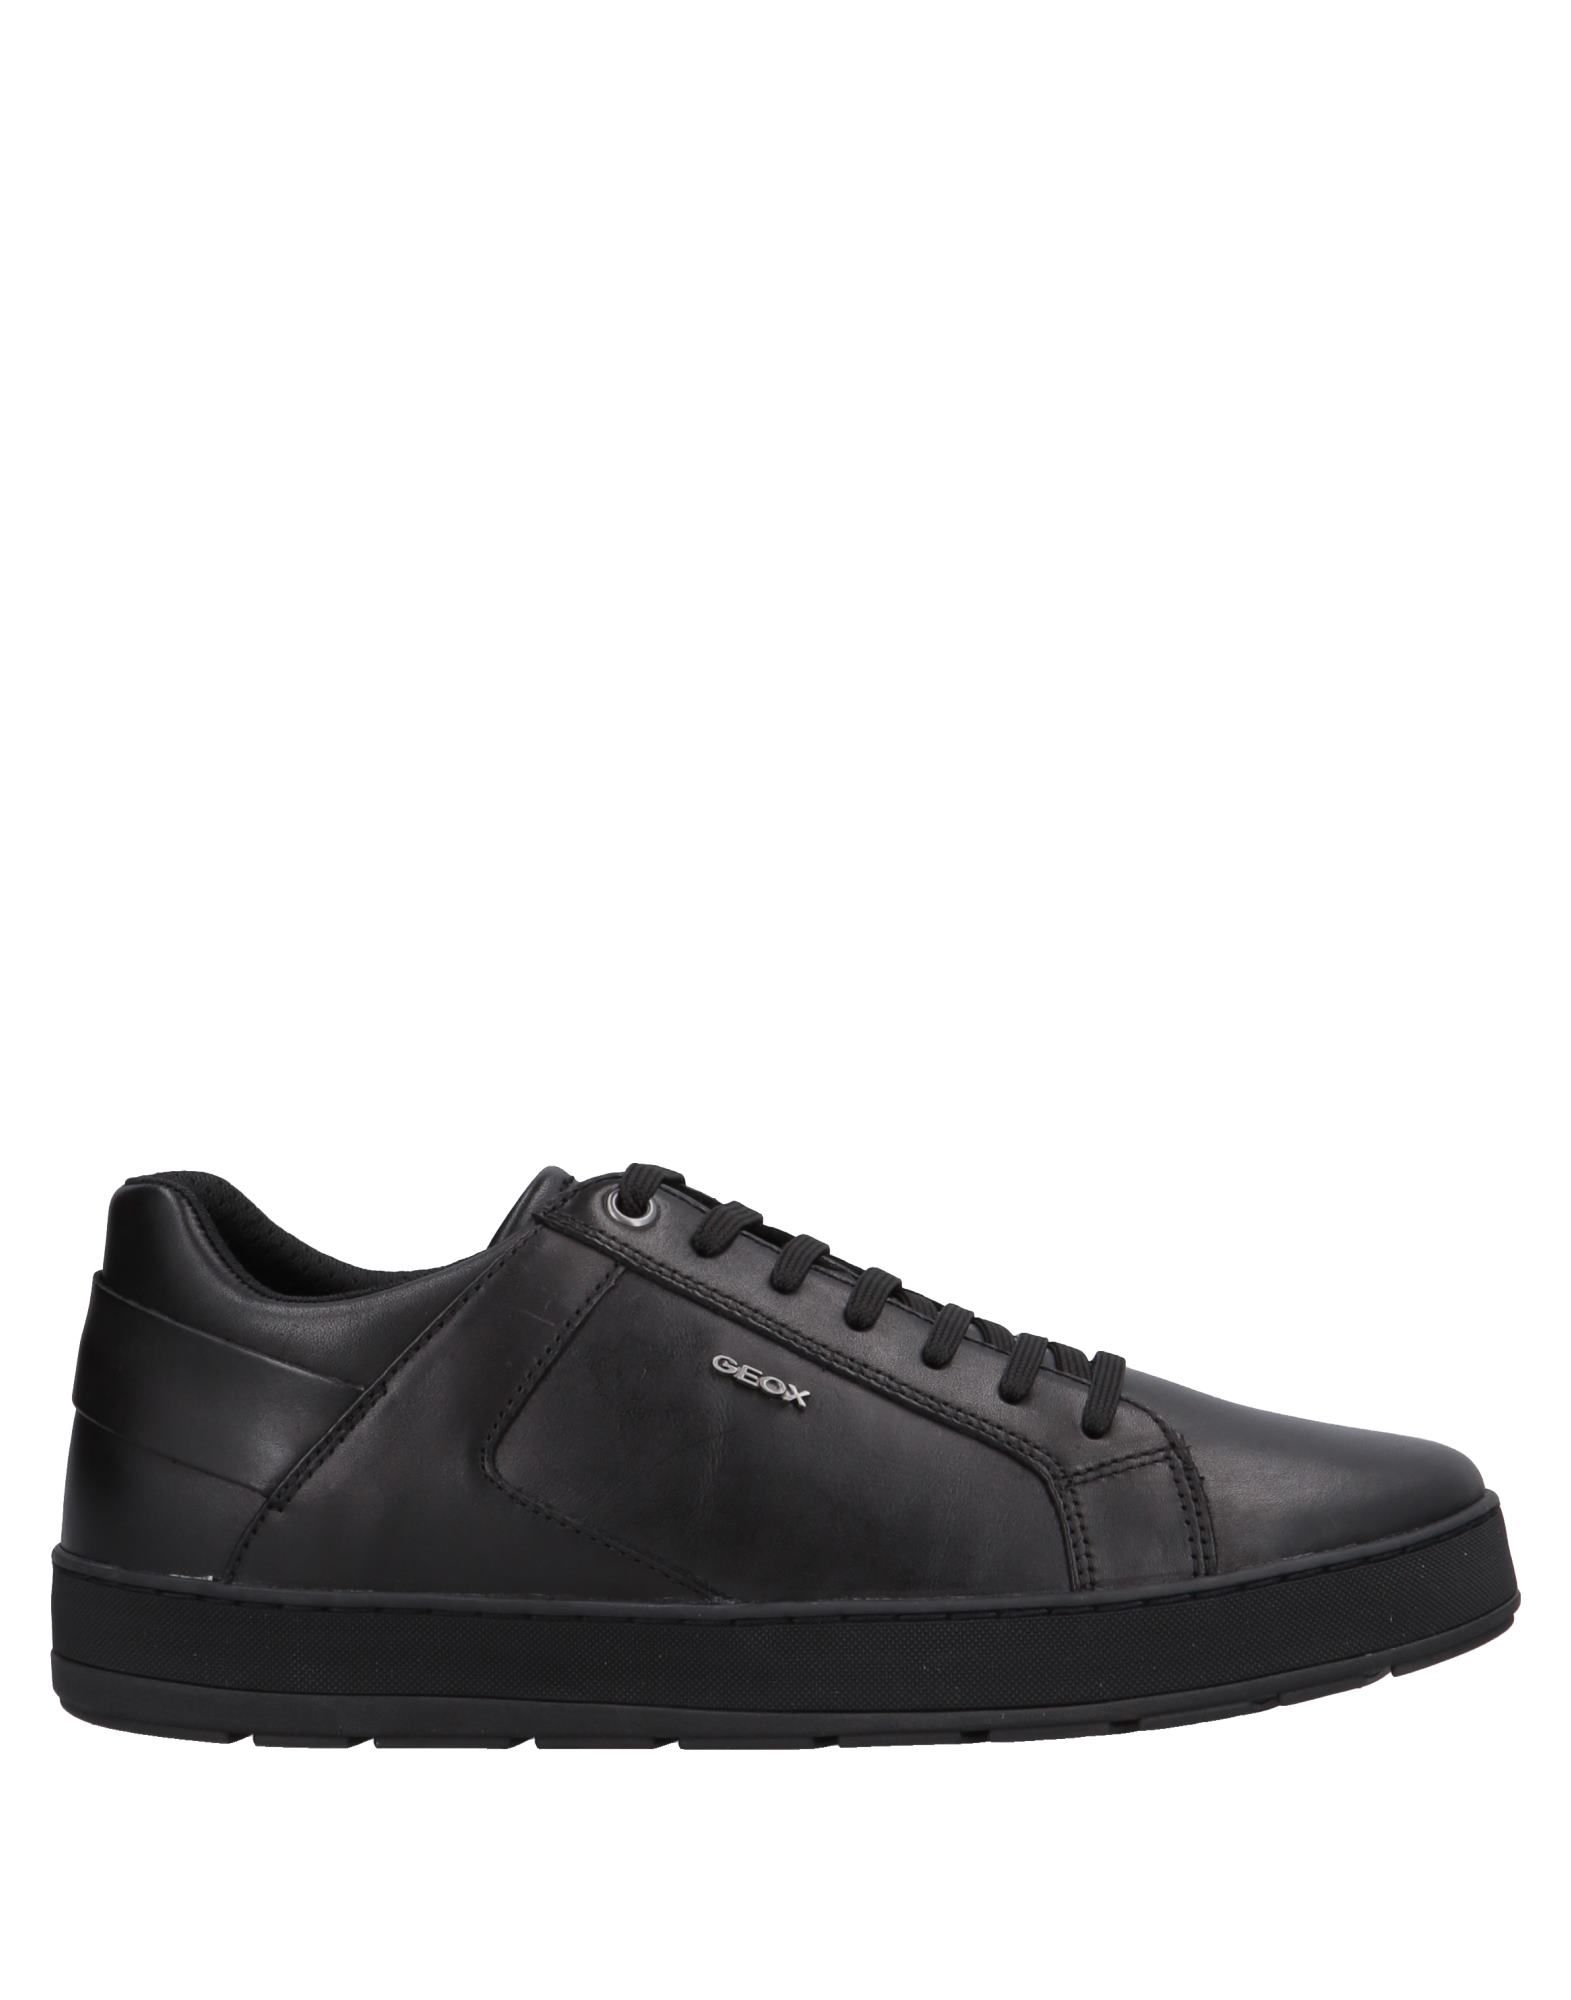 Geox on Sneakers - Men Geox Sneakers online on Geox  Canada - 11564726SS 9bf58b